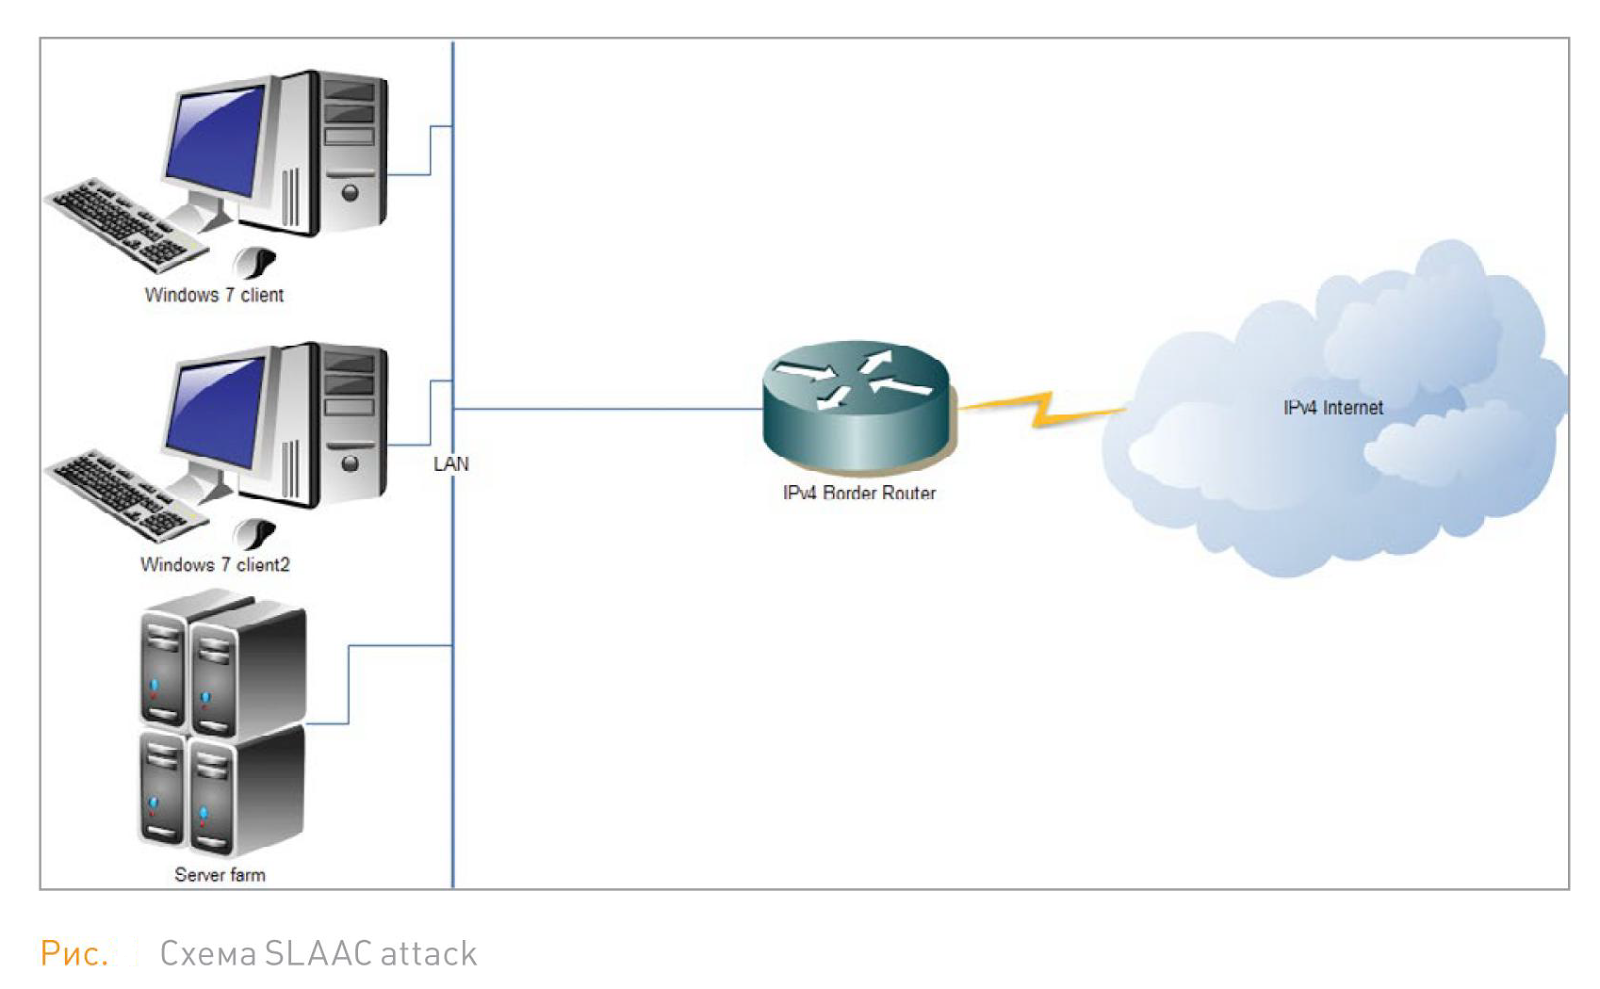 SLAAC attack on IPv4 users using IPv6